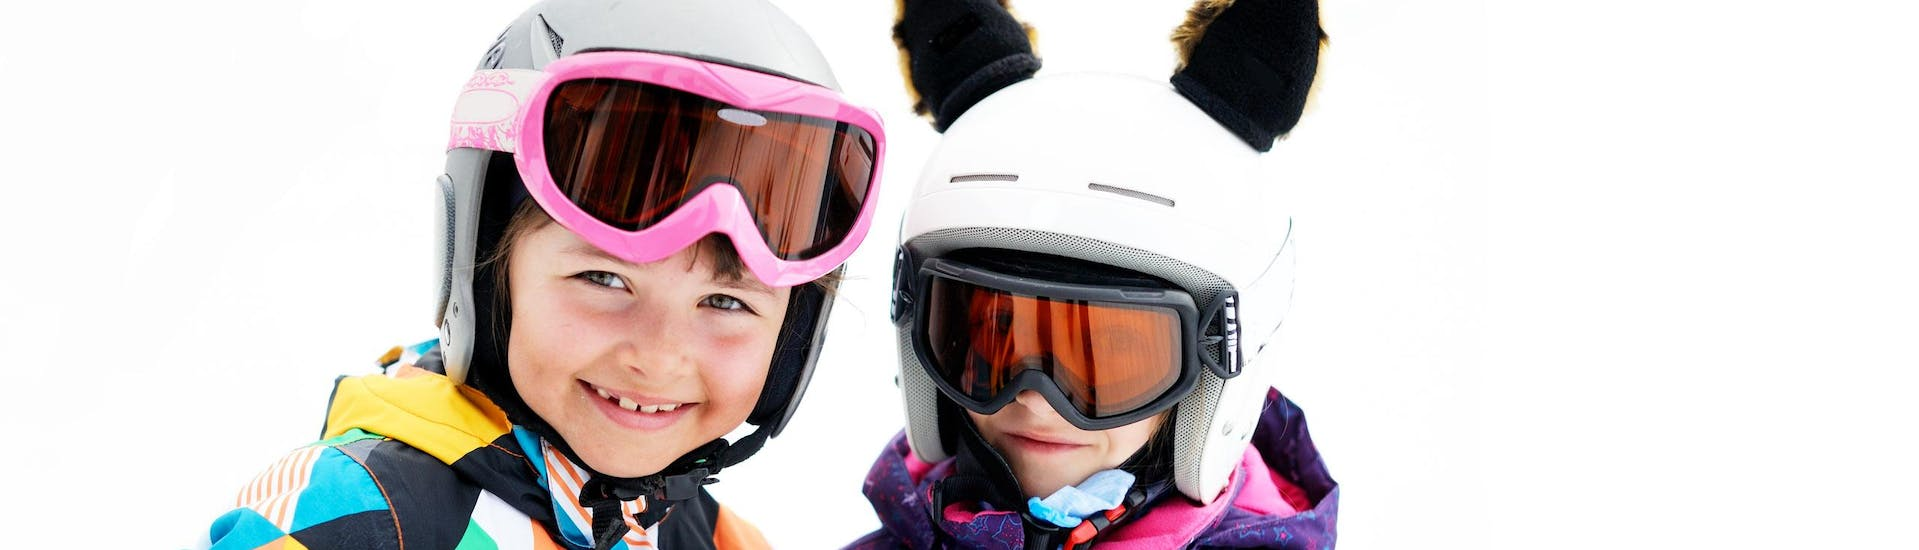 Two young children smiling at the camera during one of the Half-Day Kids Ski Lessons (3-14 y.) for All Levels organised by Schneesportschule Wildkogel.